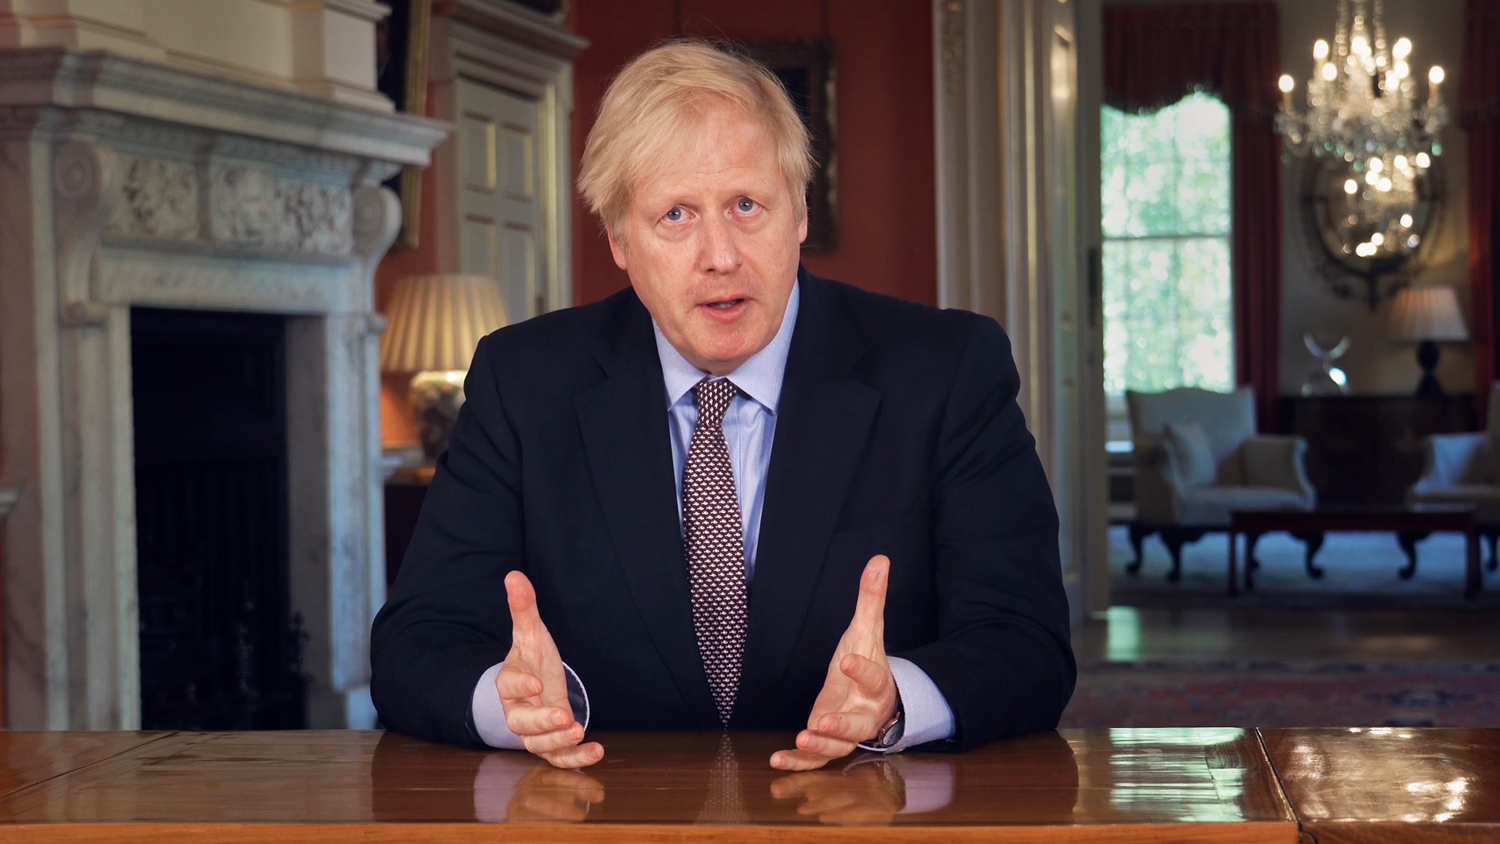 Boris Johnson during a TV address